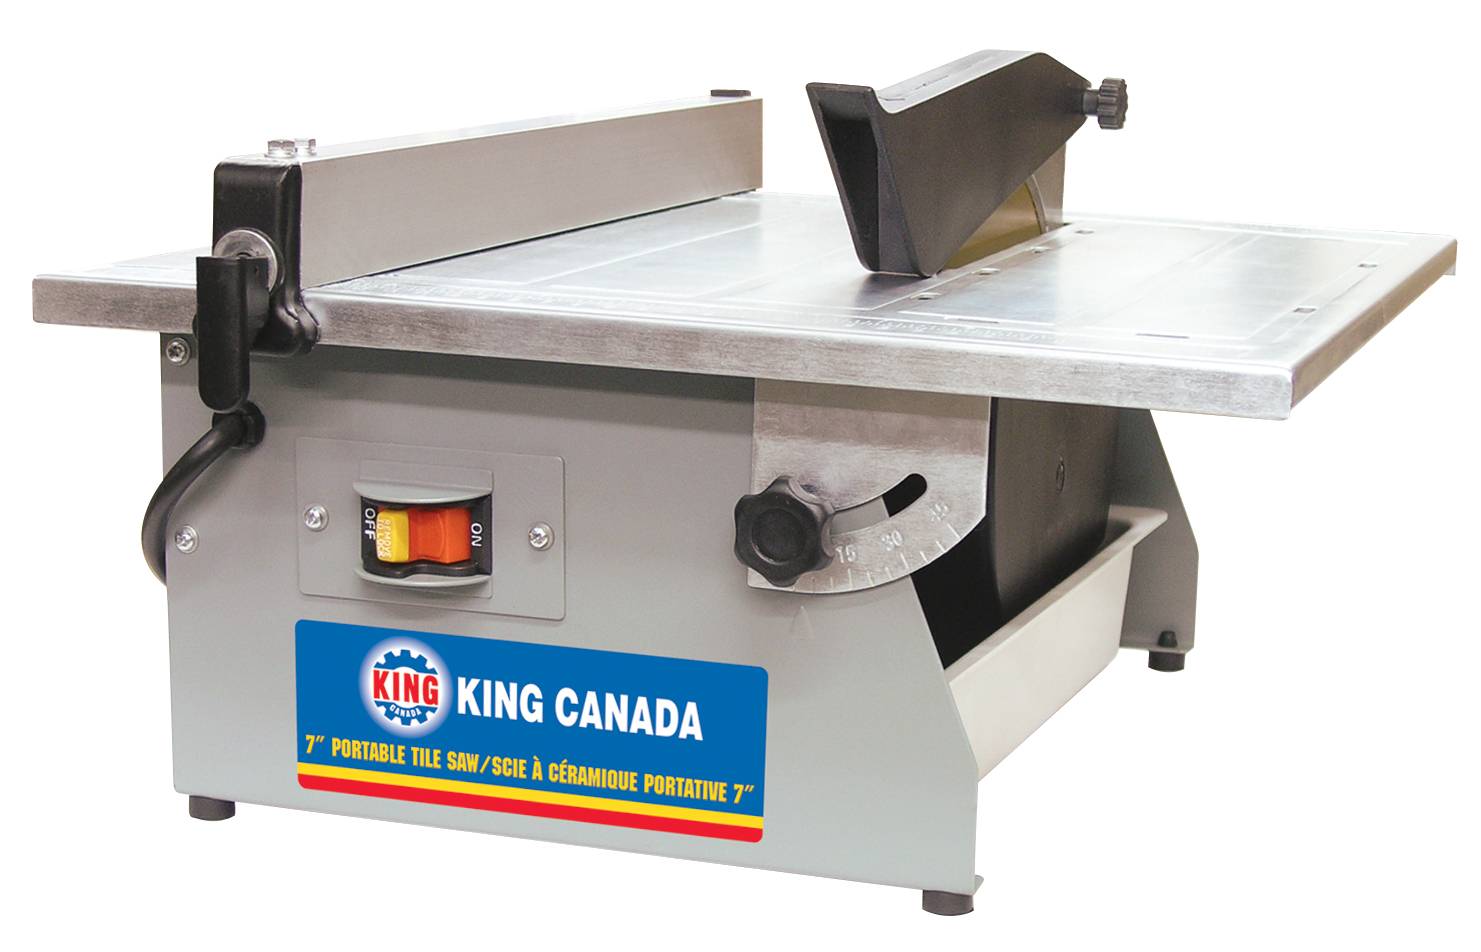 King Canada KC-3003N Saw, Wet 7, Portable Tile